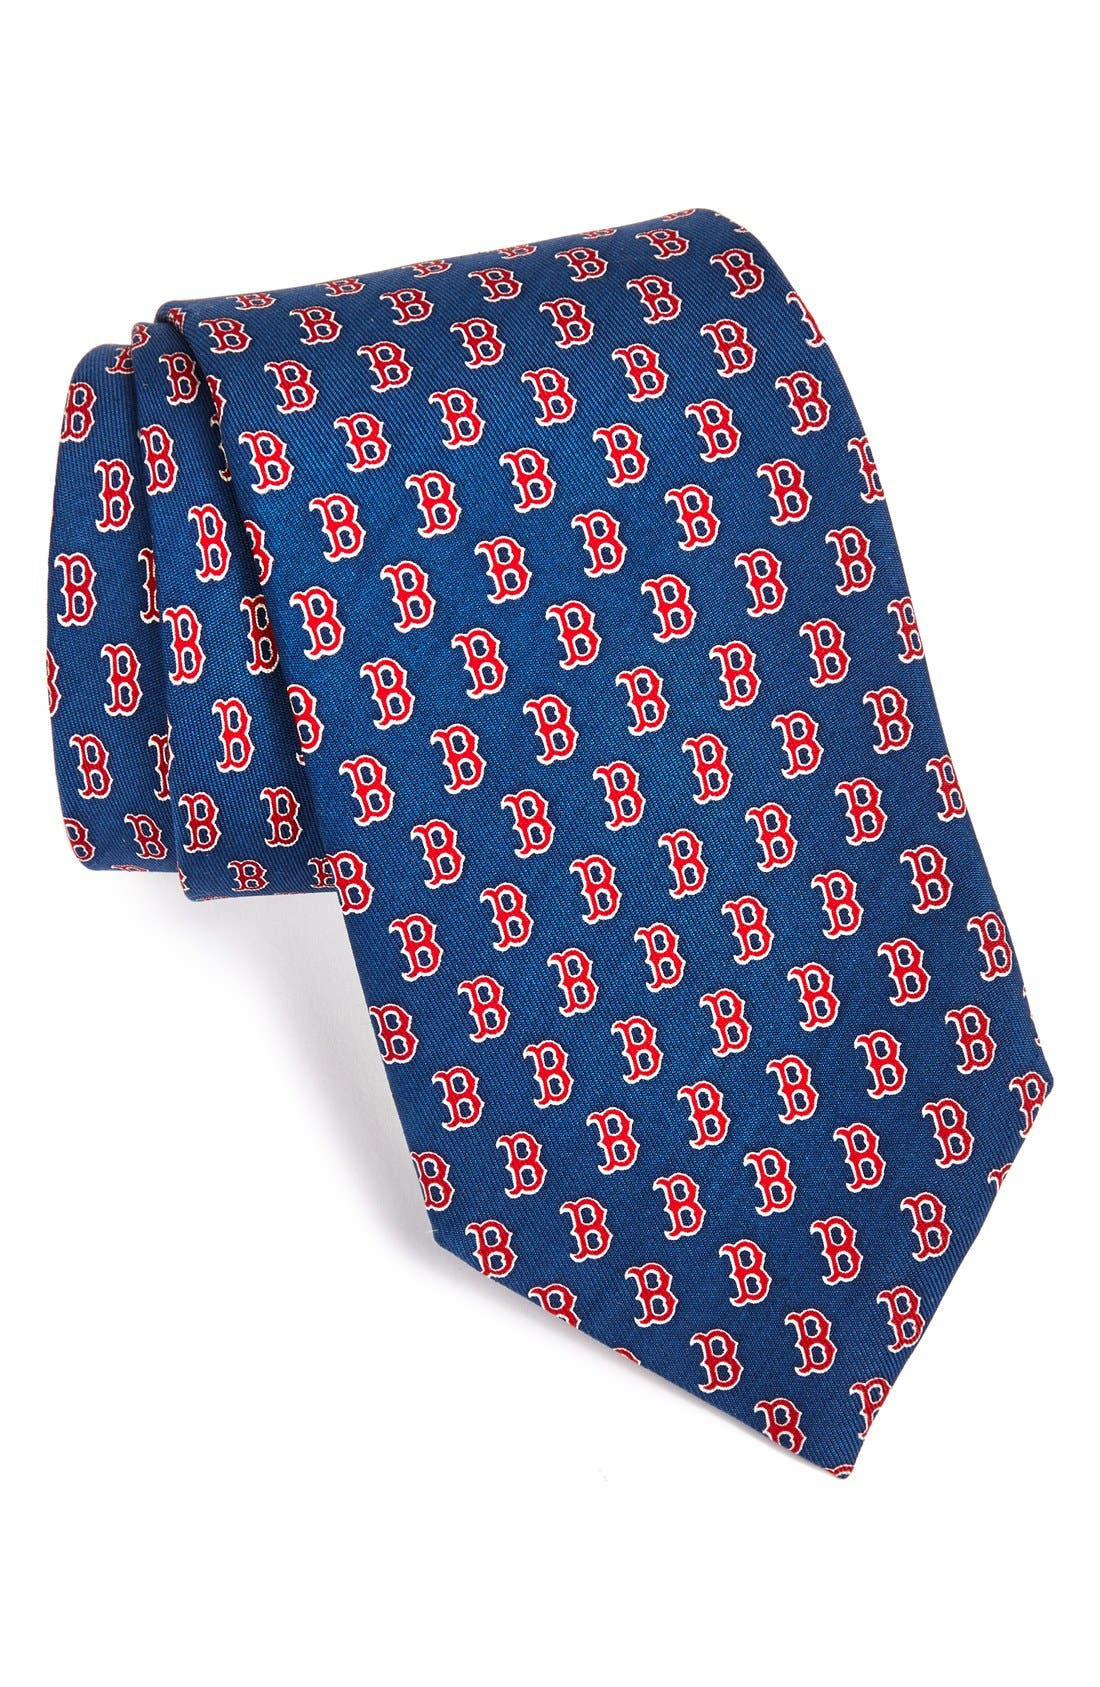 Main Image - vineyard vines Boston Red Sox Silk Tie